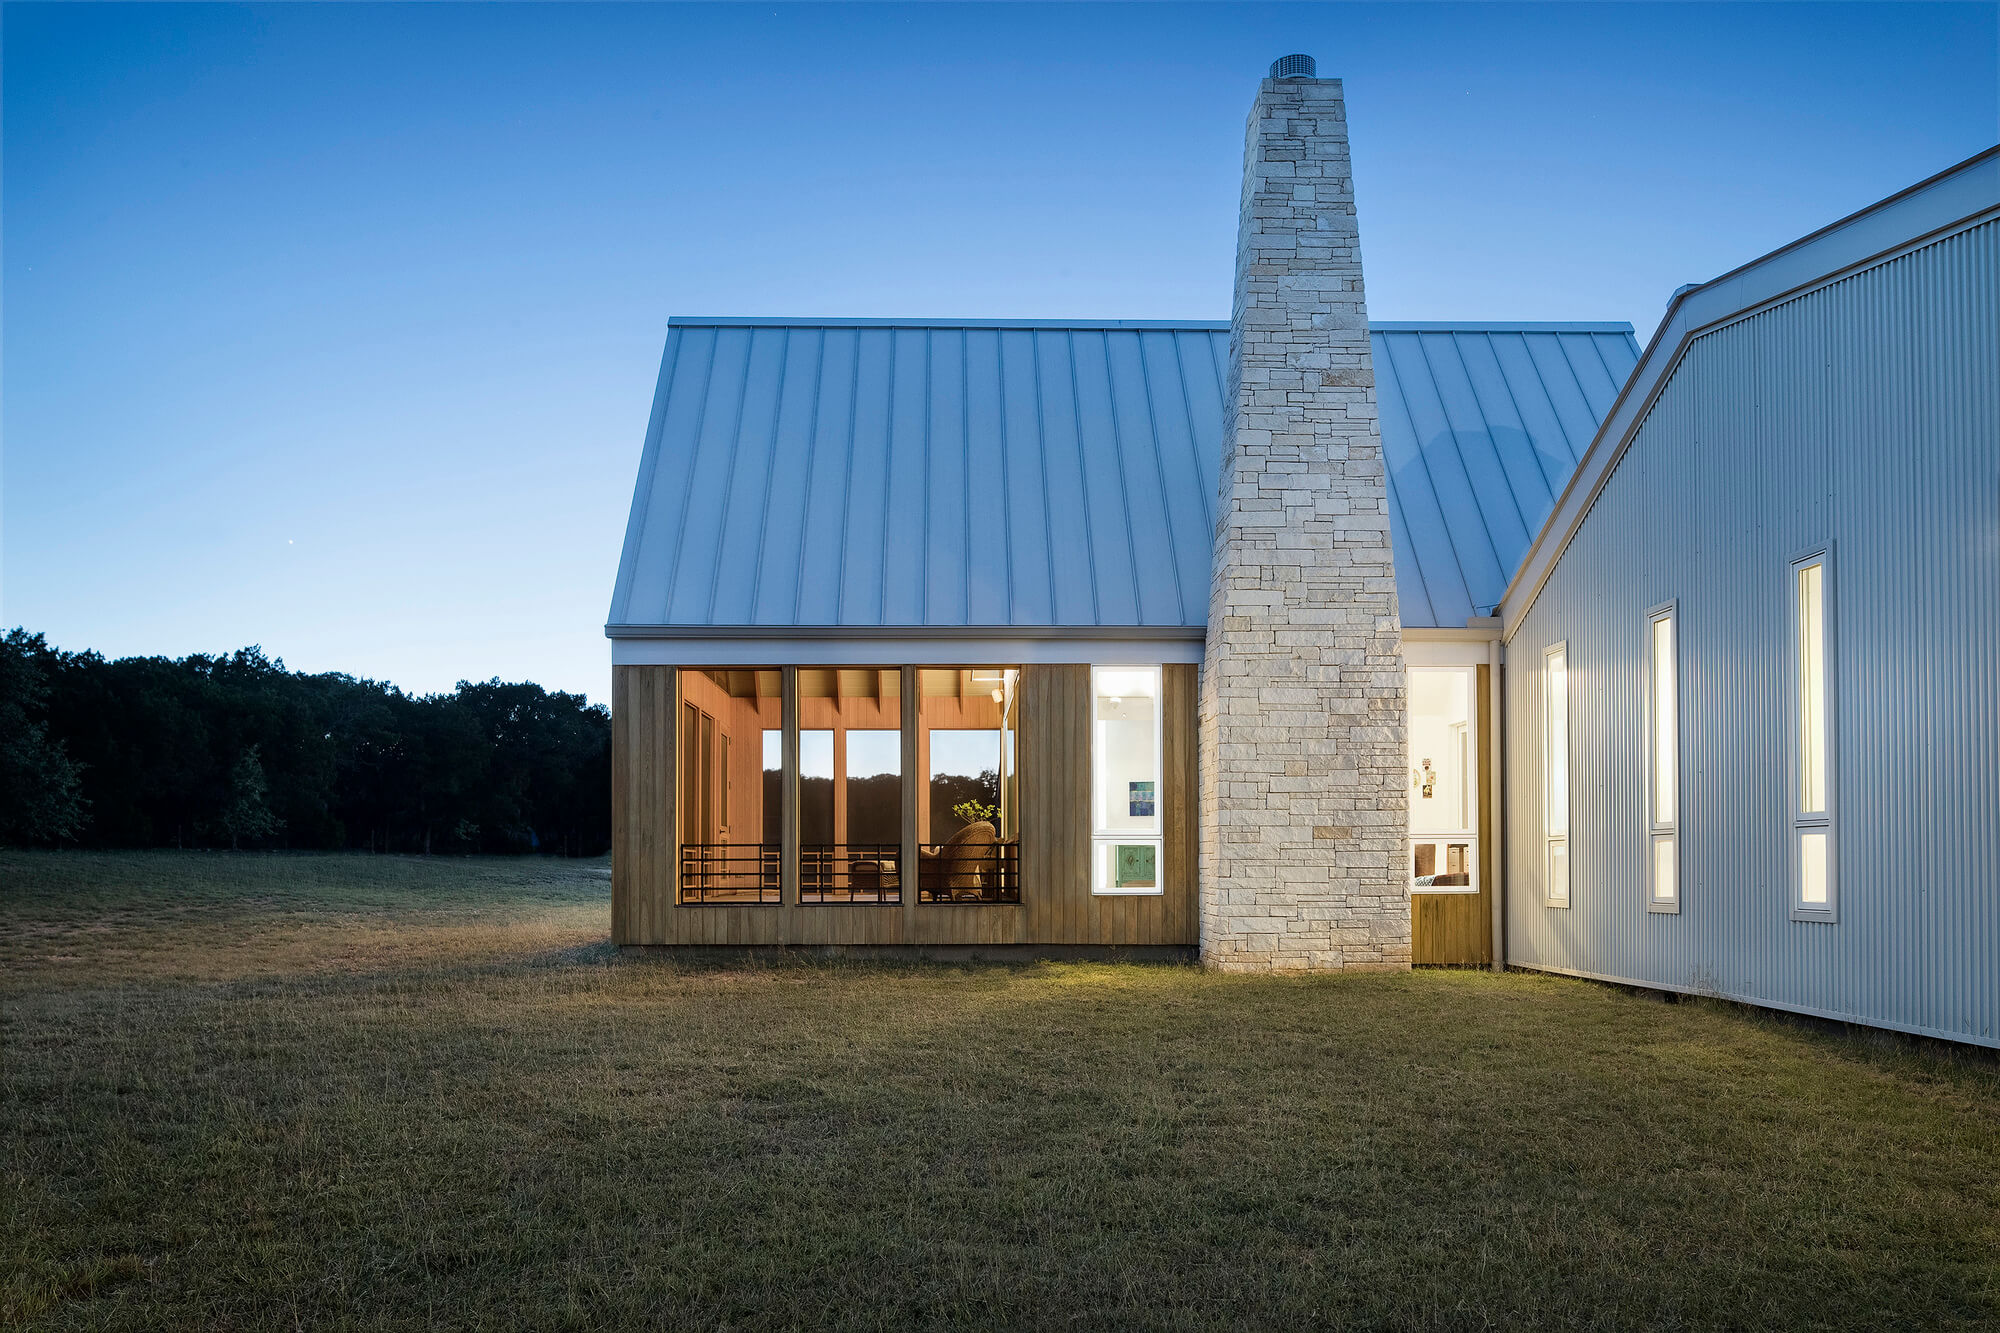 Hill Country House by Miró Rivera Architects